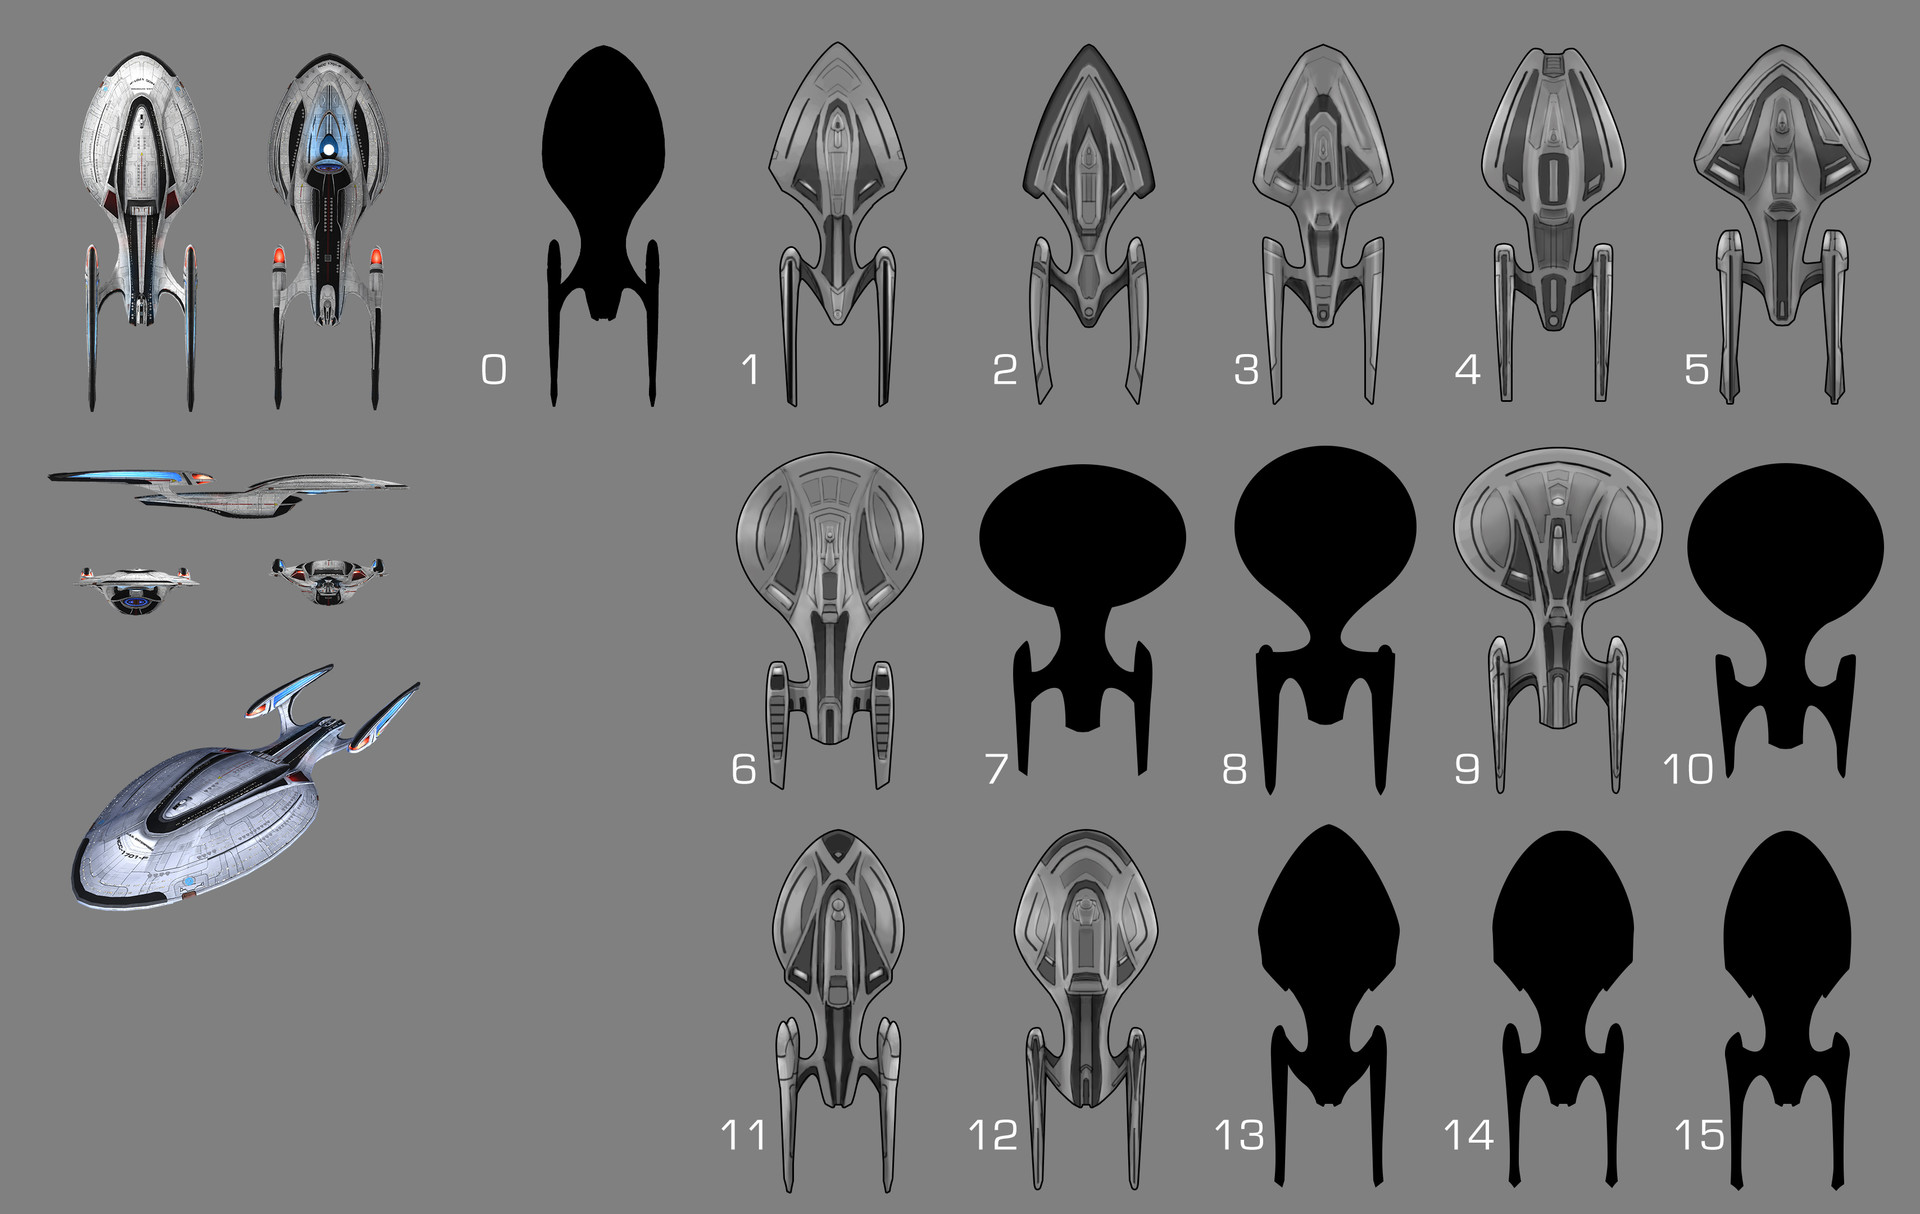 As I was responsible for modeling all three versions of these flagships, I started by sketching several silhouettes and variations. Ultimately the final designs mixed and matched various elements for each ship.